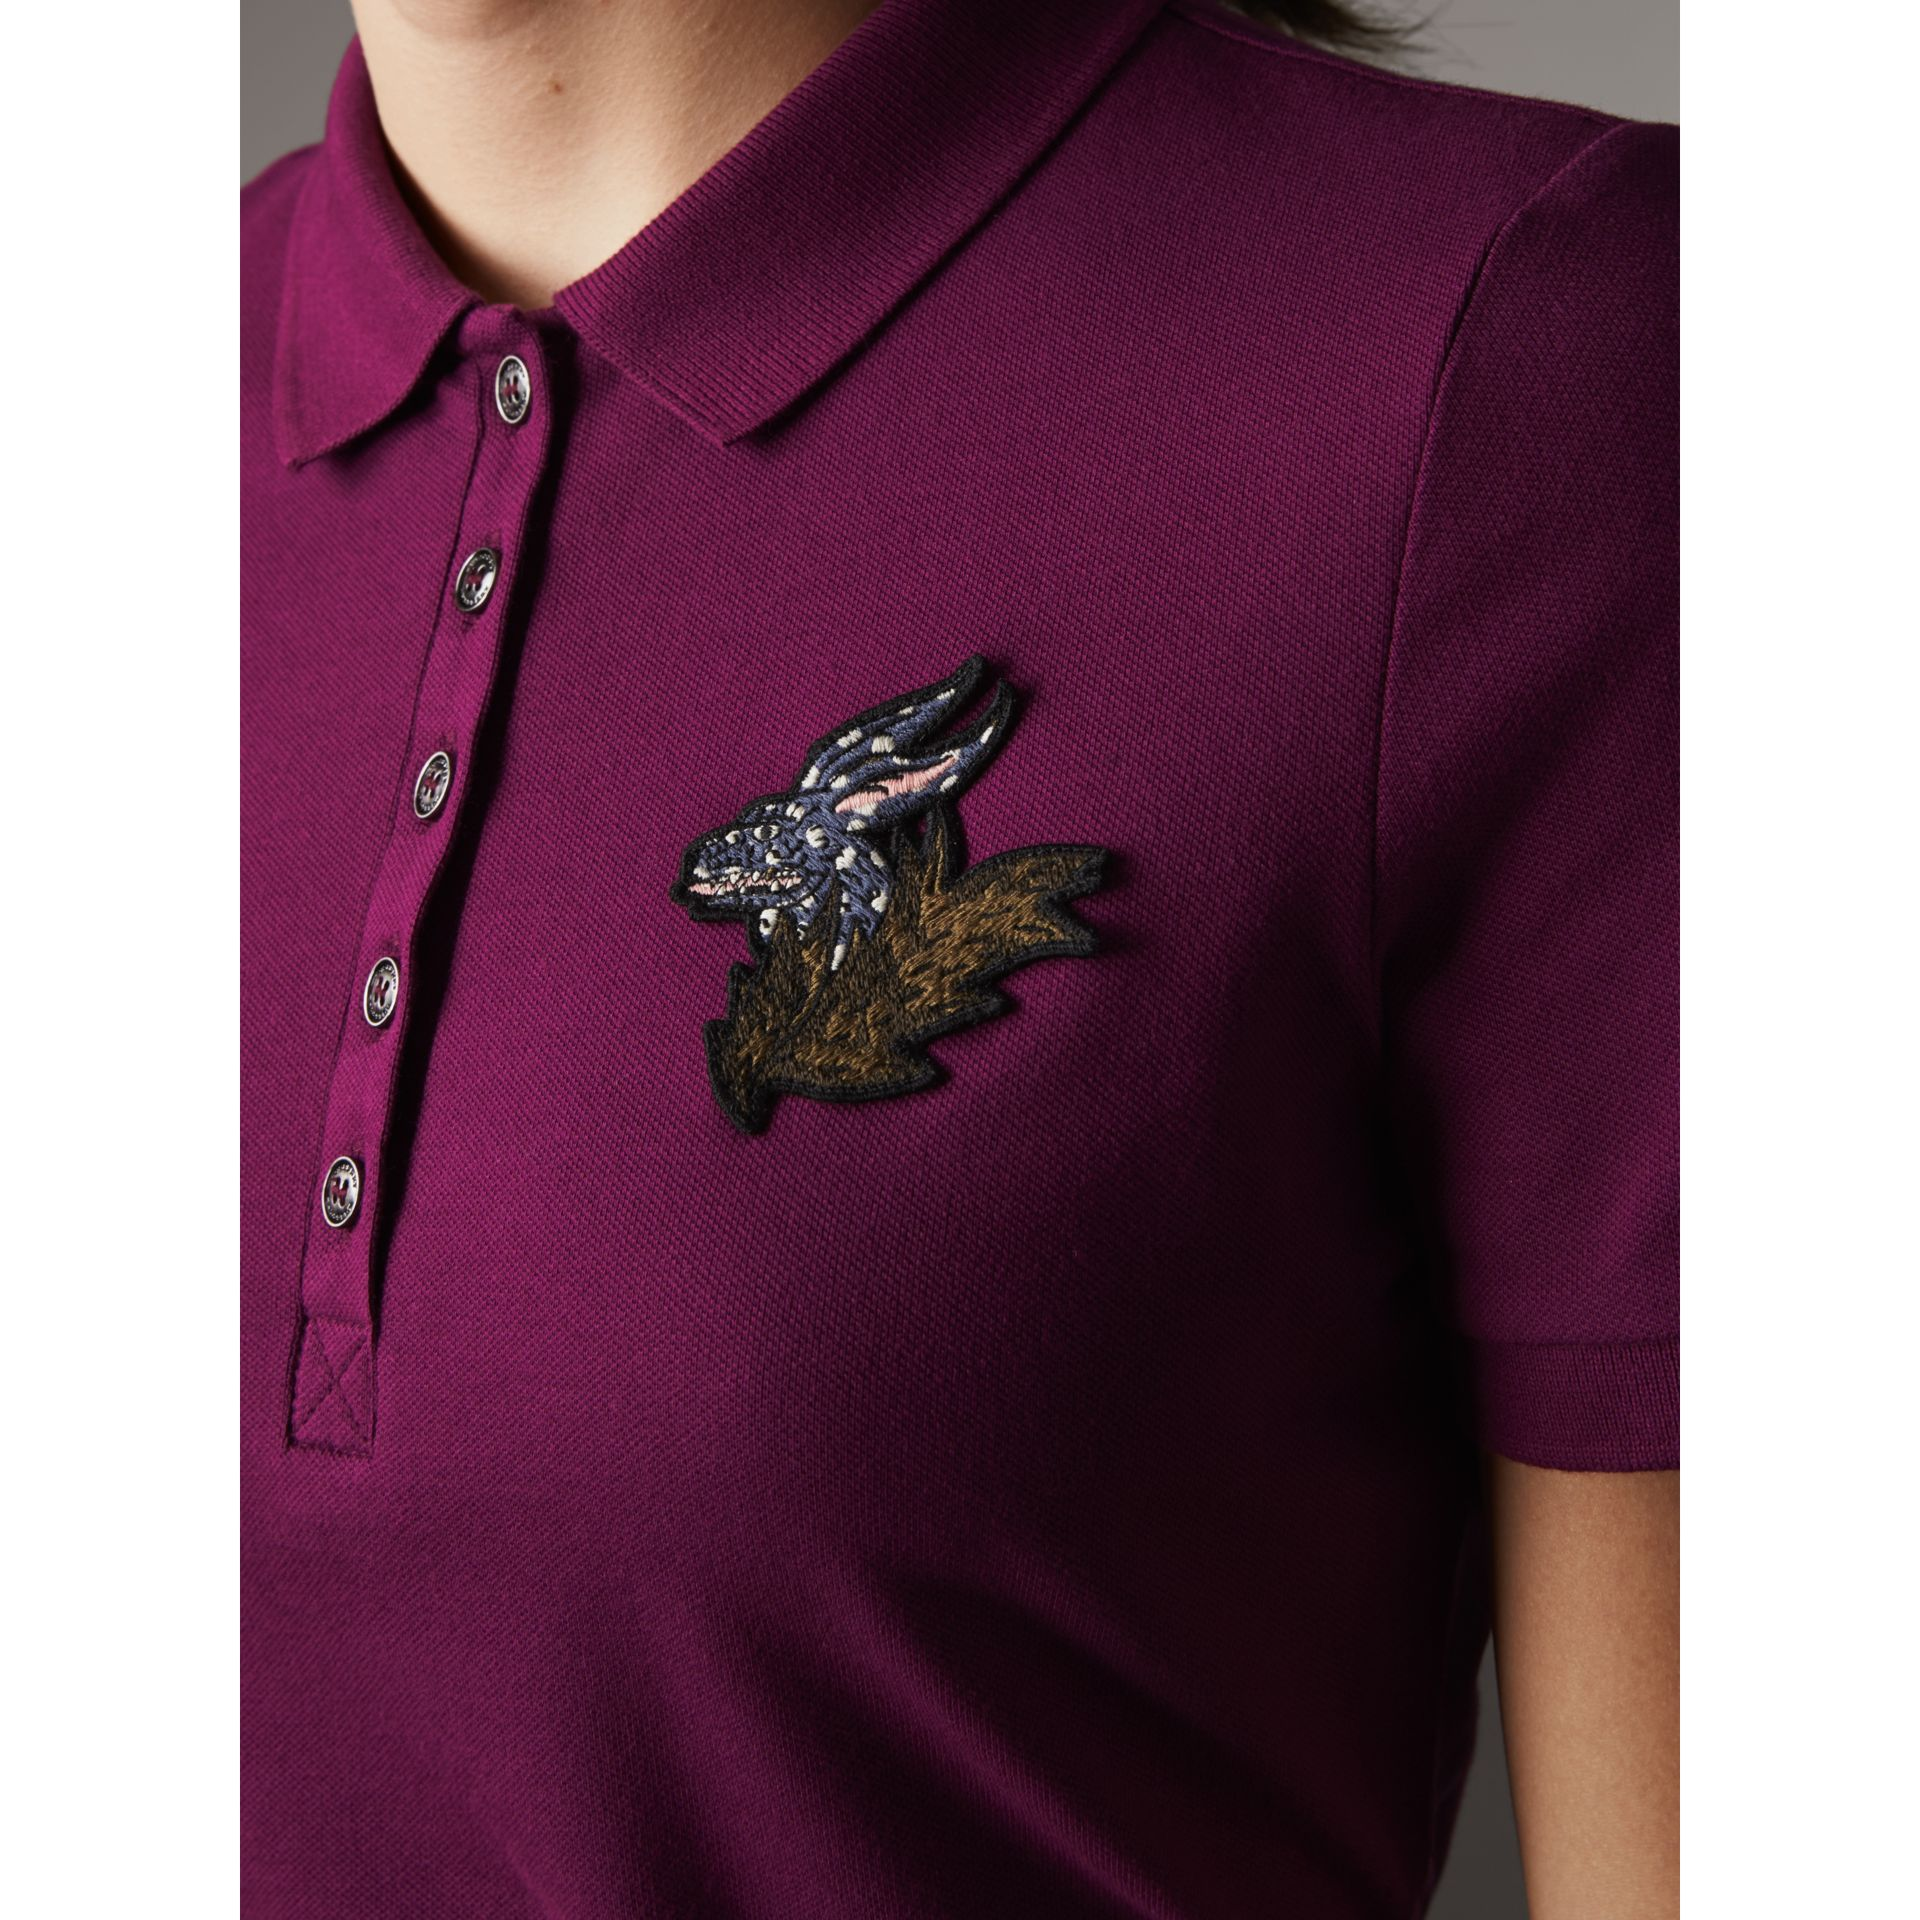 Beasts Motif Stretch Cotton Piqué Polo Shirt in Magenta Pink - Women | Burberry - gallery image 2